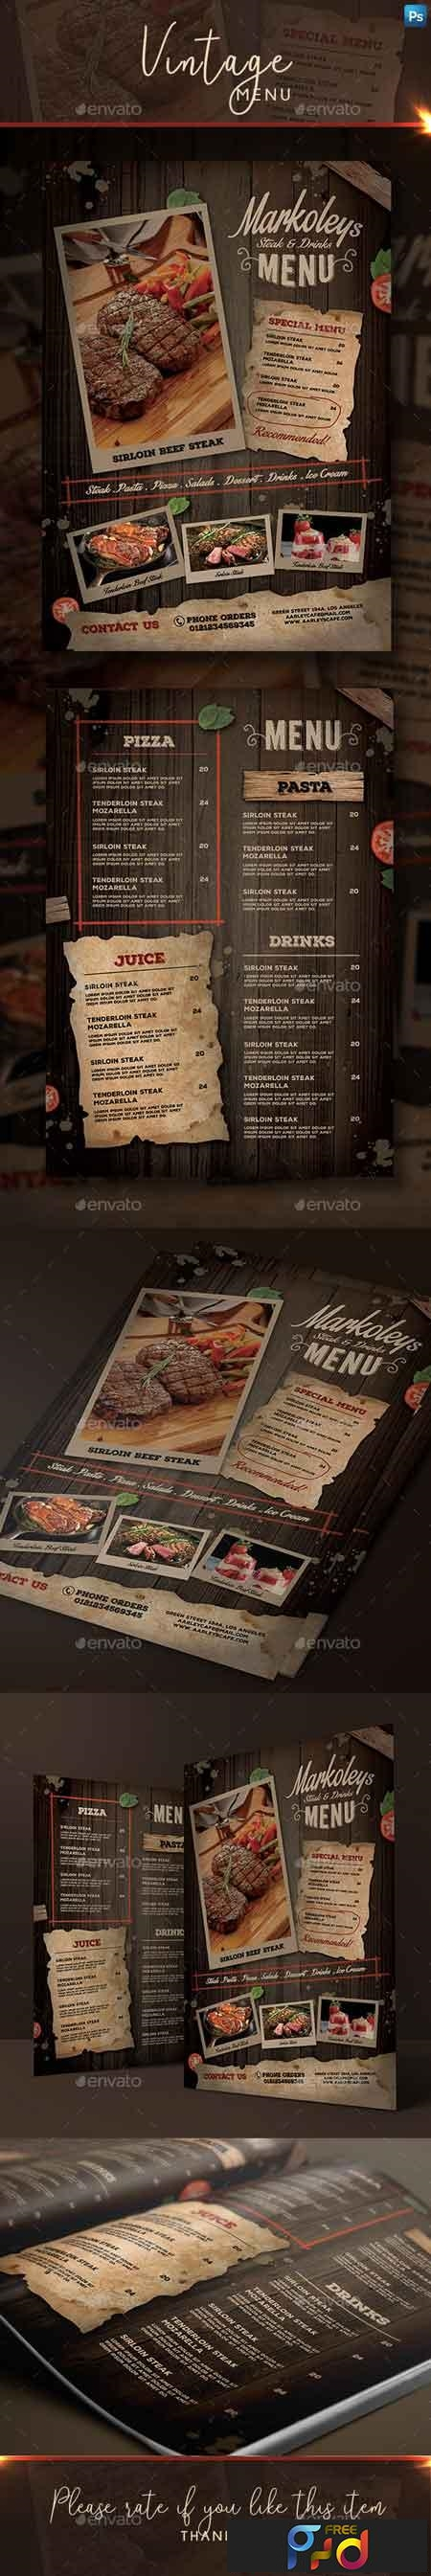 Rustic Cafe Menu 22651513 1